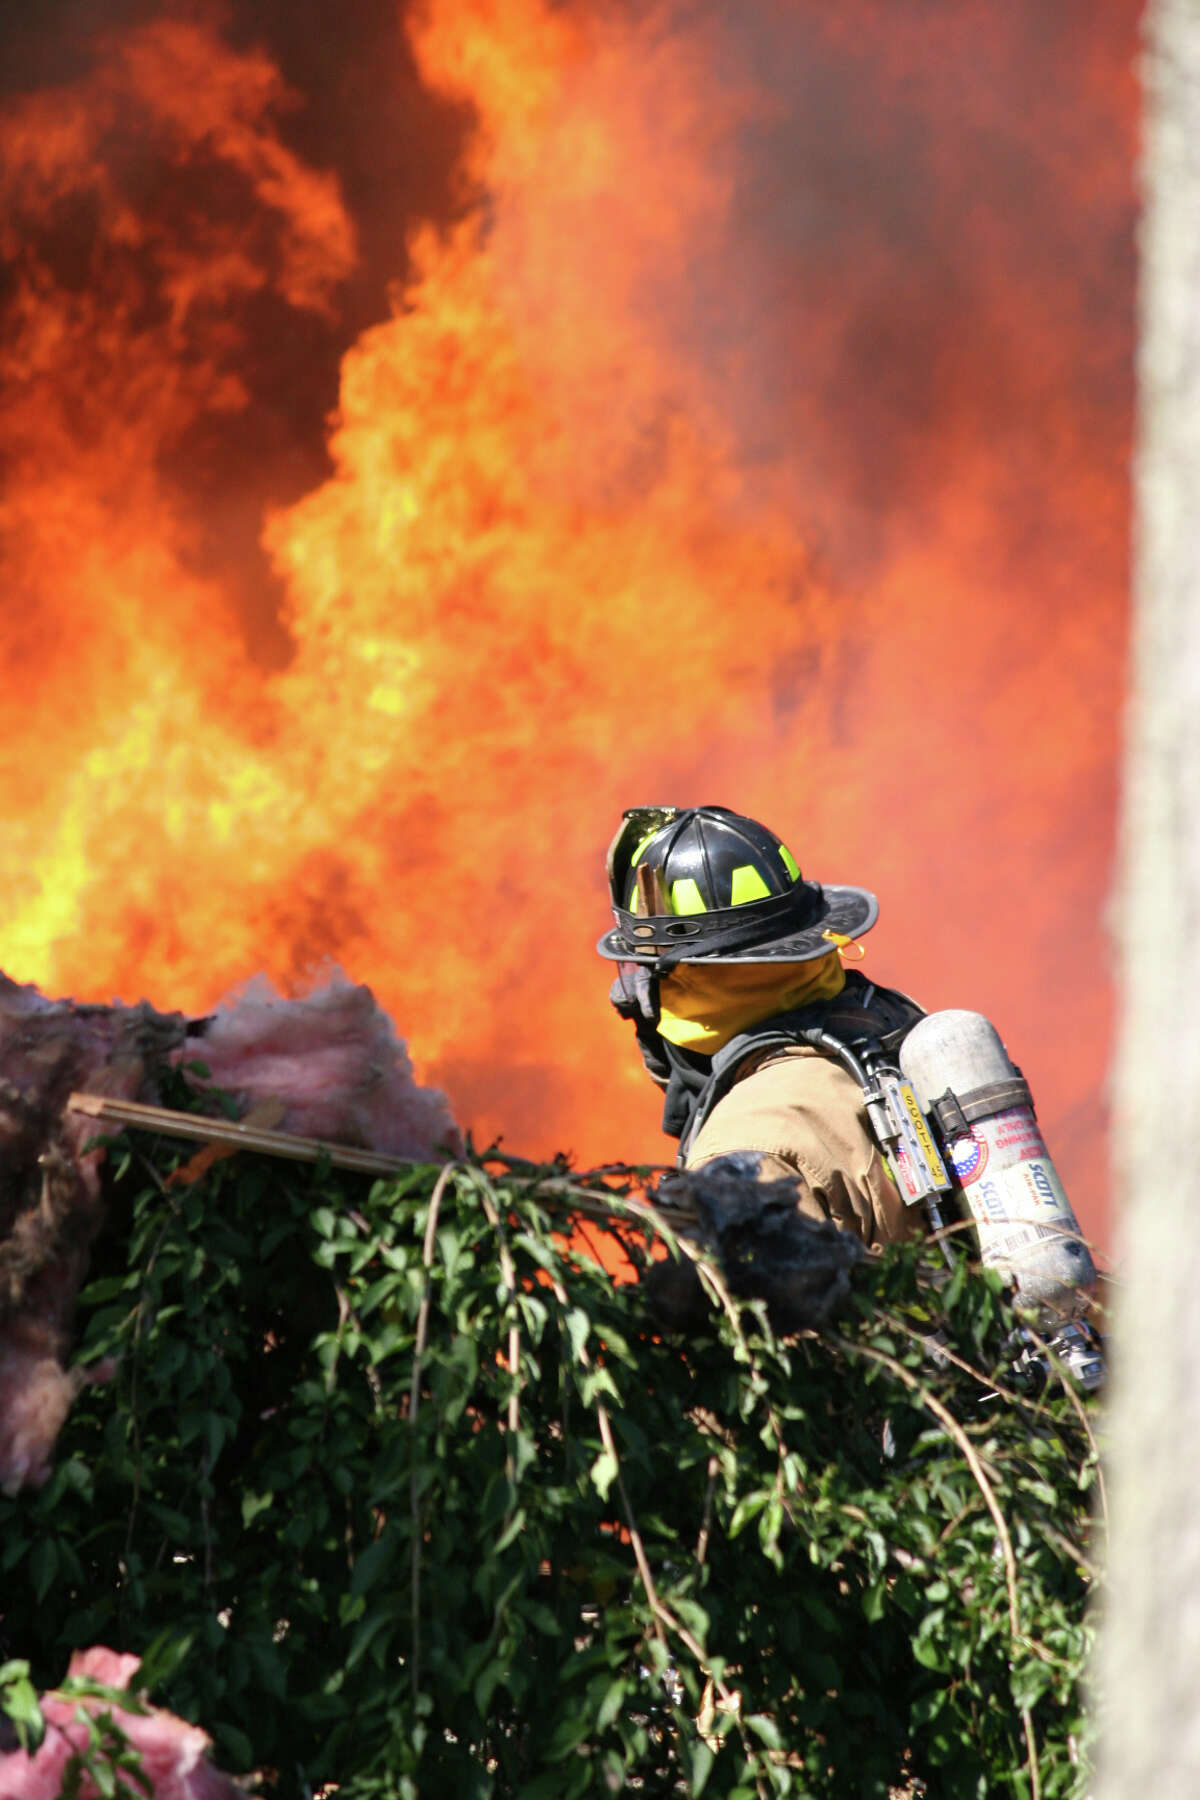 A firefighter battles a blaze after a propane tank exploded destroying a house at 305 Webbs Hill Road in North Stamford.